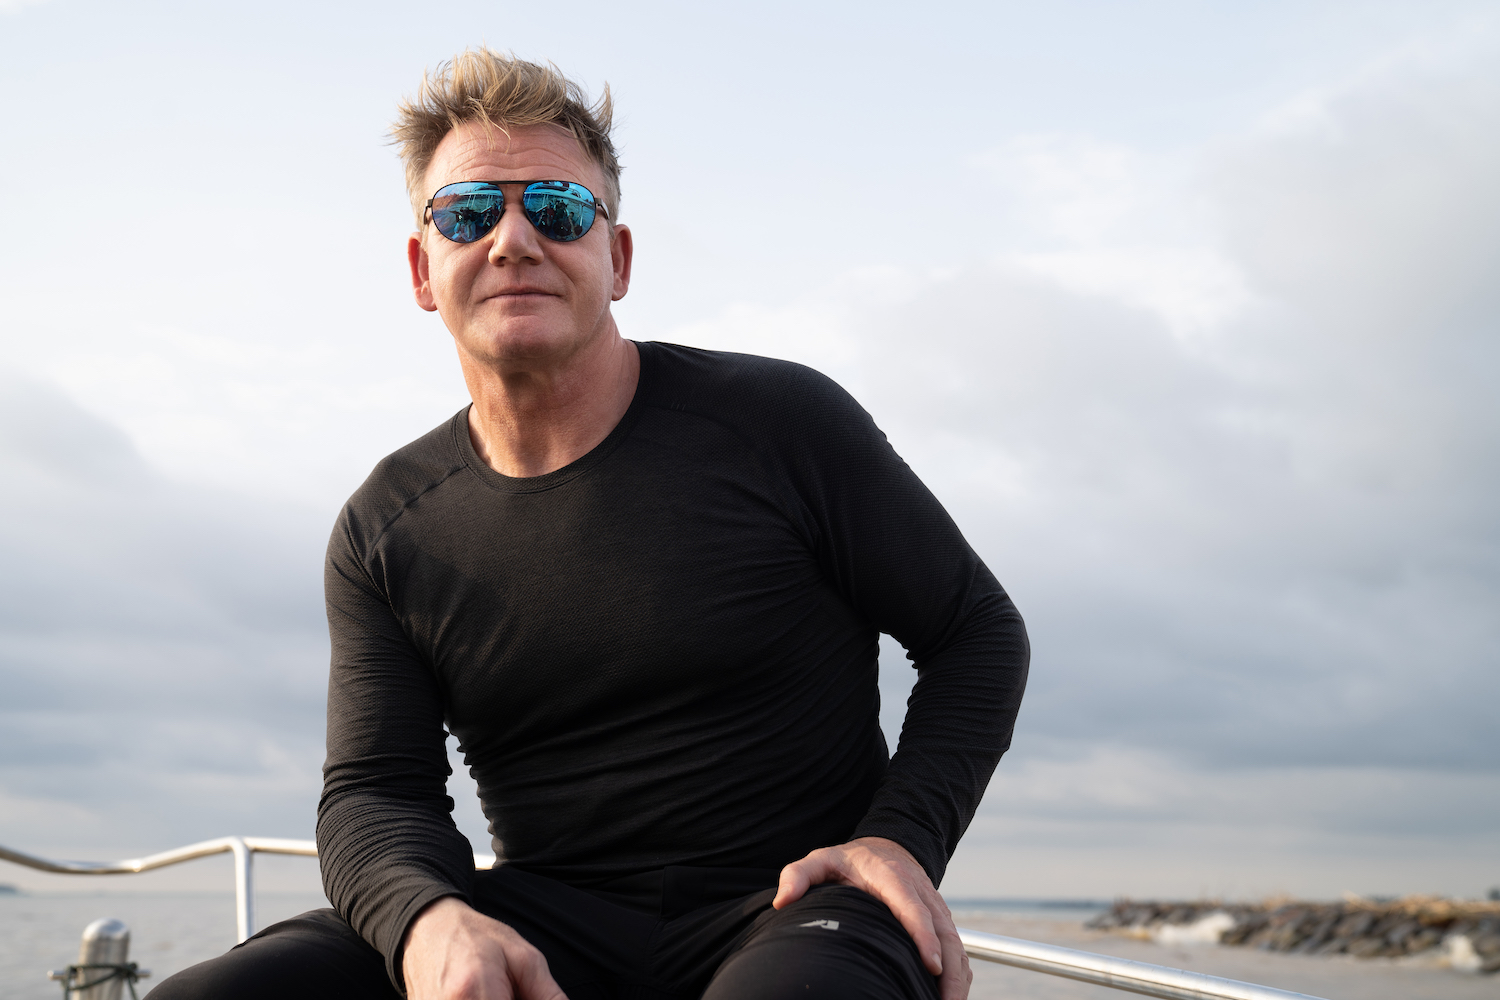 Gordon Ramsay: Food, Travel and Adrenalin